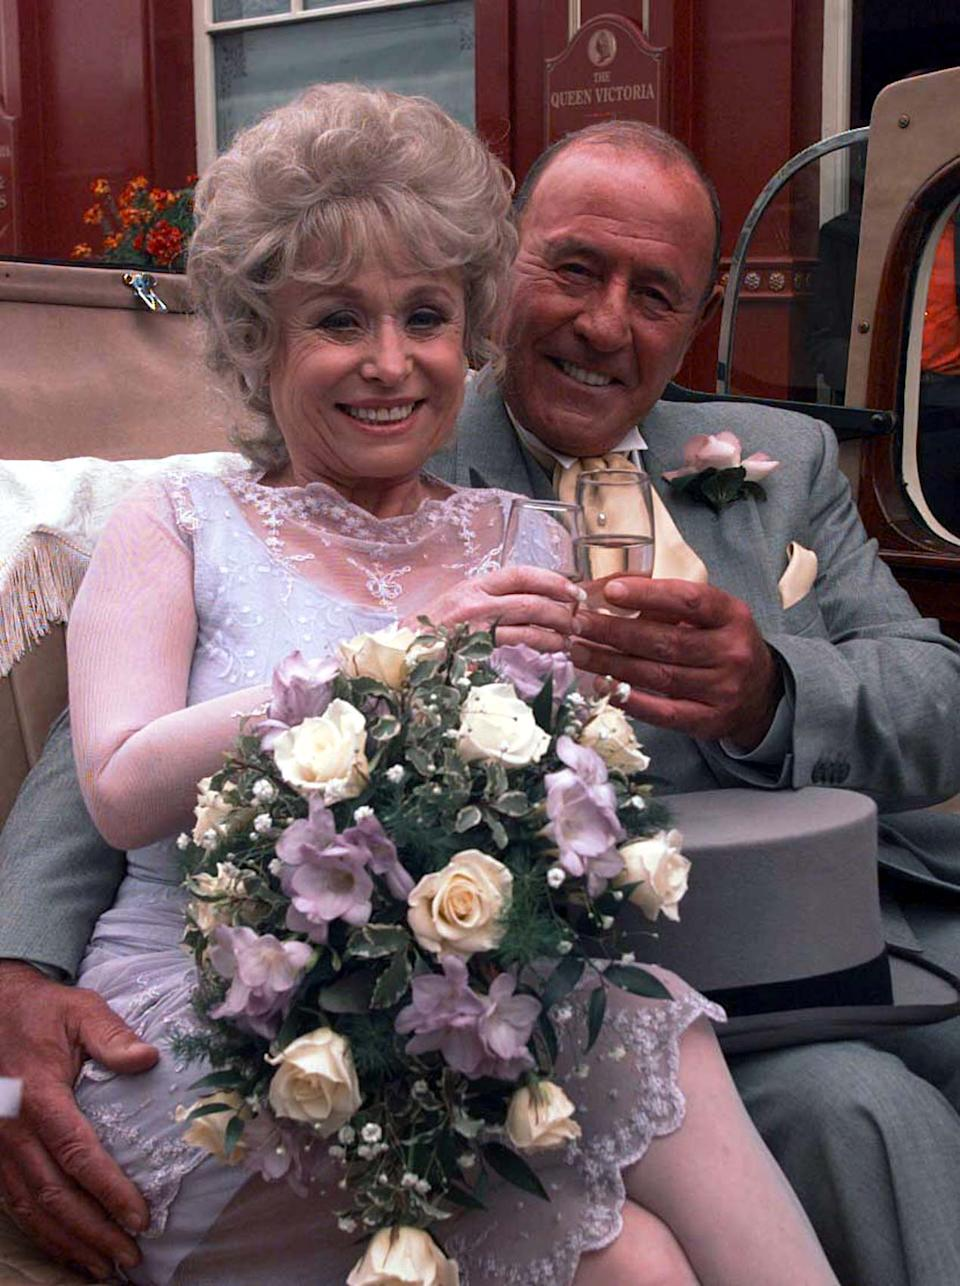 EastEnders stars Barbara Windsor and  Mike Reid, as Peggy Mitchell and Frank Butcher, during a photocall at London's Elstree studios, where  their on-screen wedding reception was filmed.   (Photo by John Stillwell - PA Images/PA Images via Getty Images)